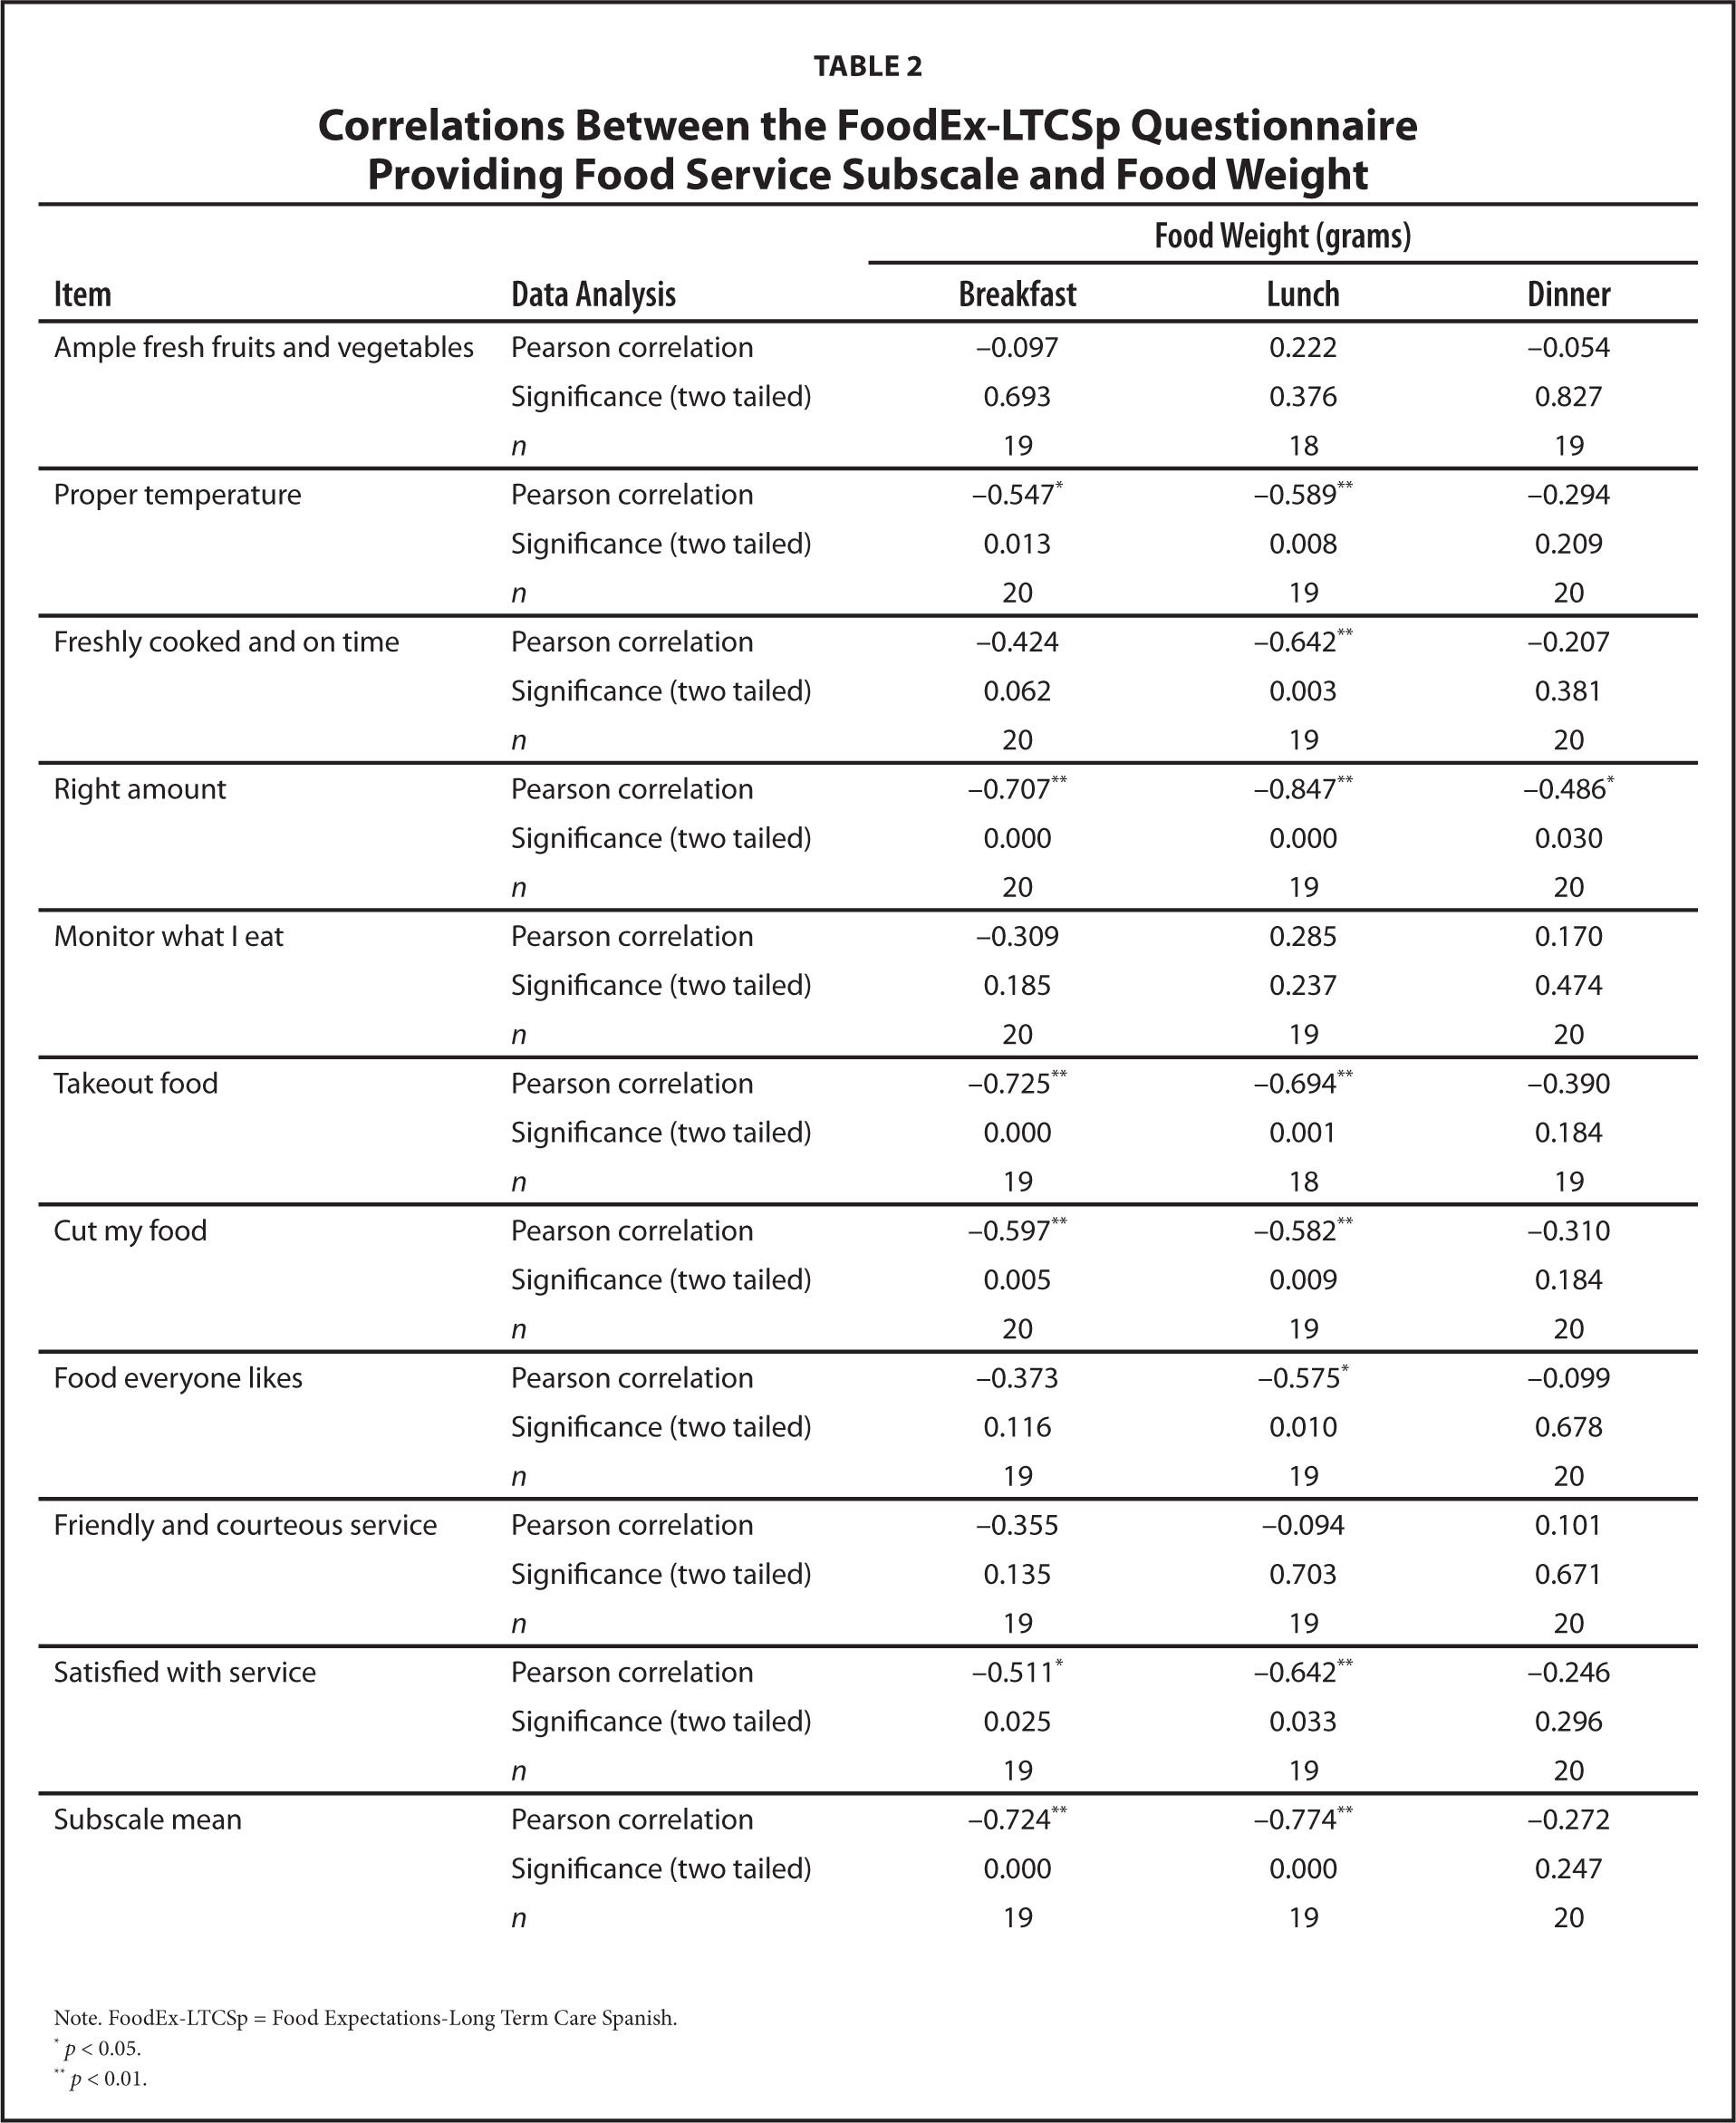 Correlations Between the FoodEx-LTCSp Questionnaire Providing Food Service Subscale and Food Weight